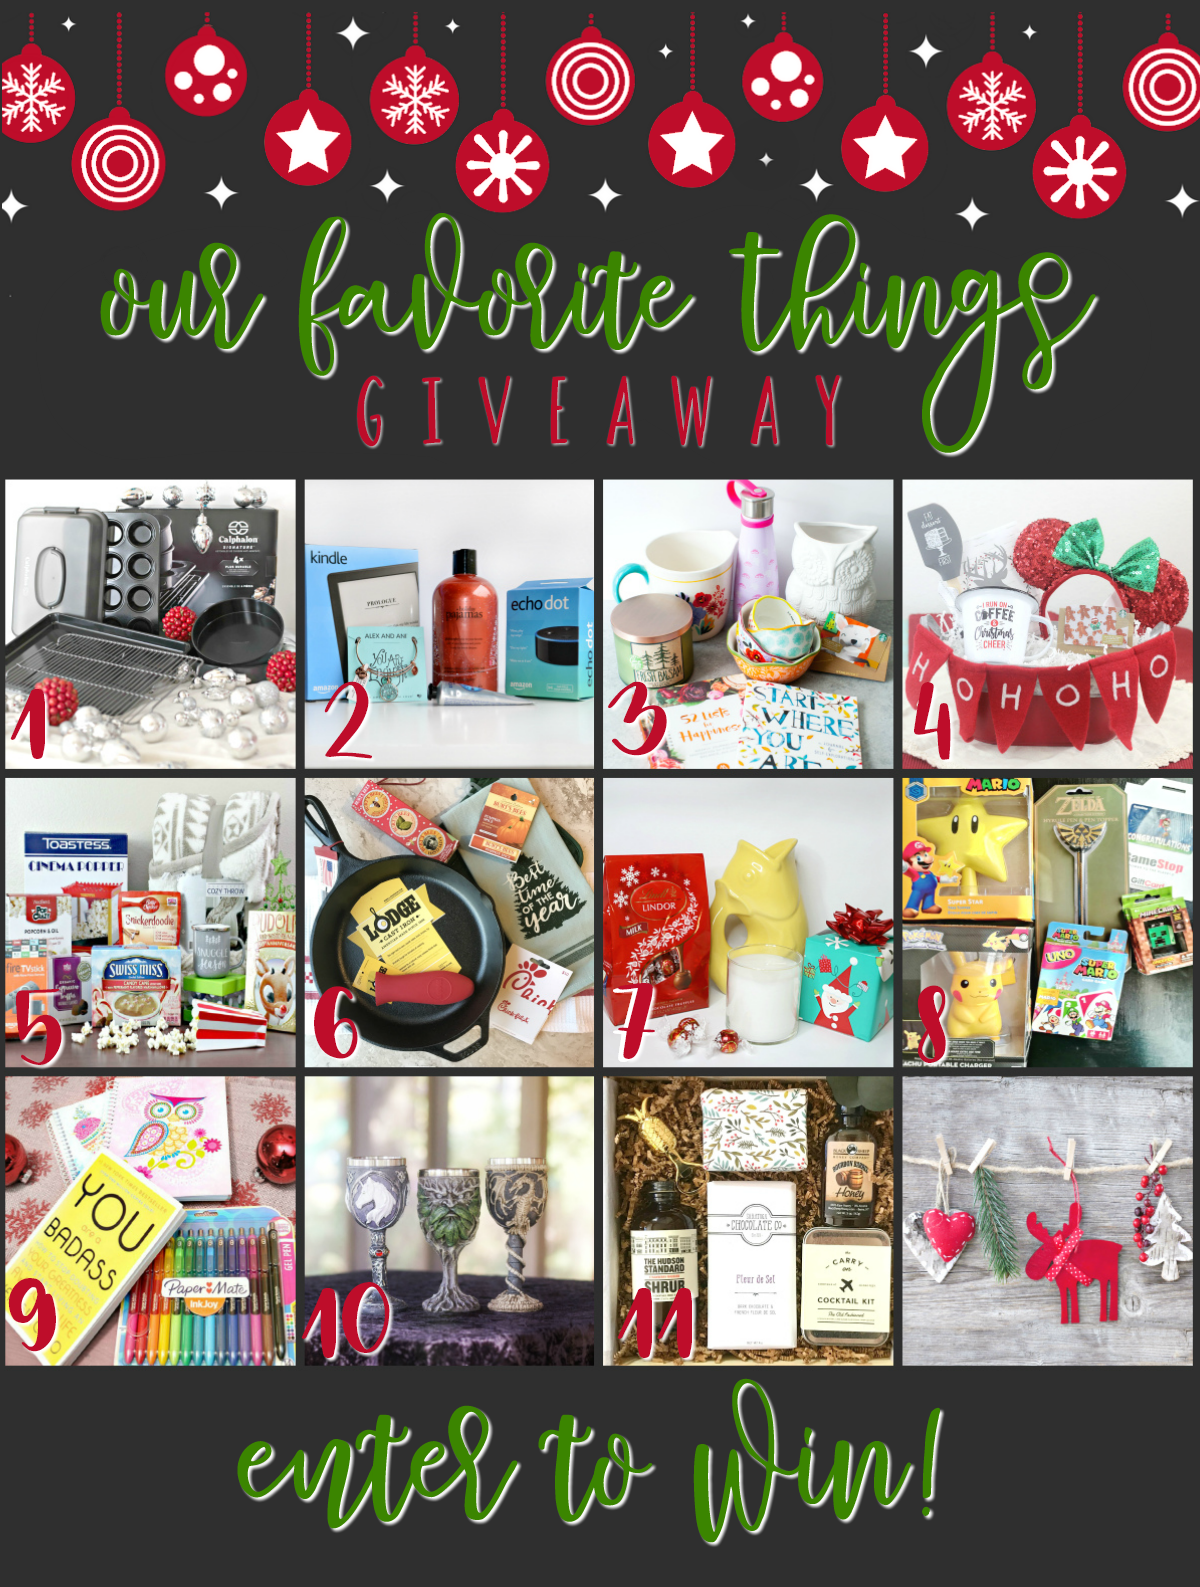 #1 Our Favorite Things Giveaway (1)